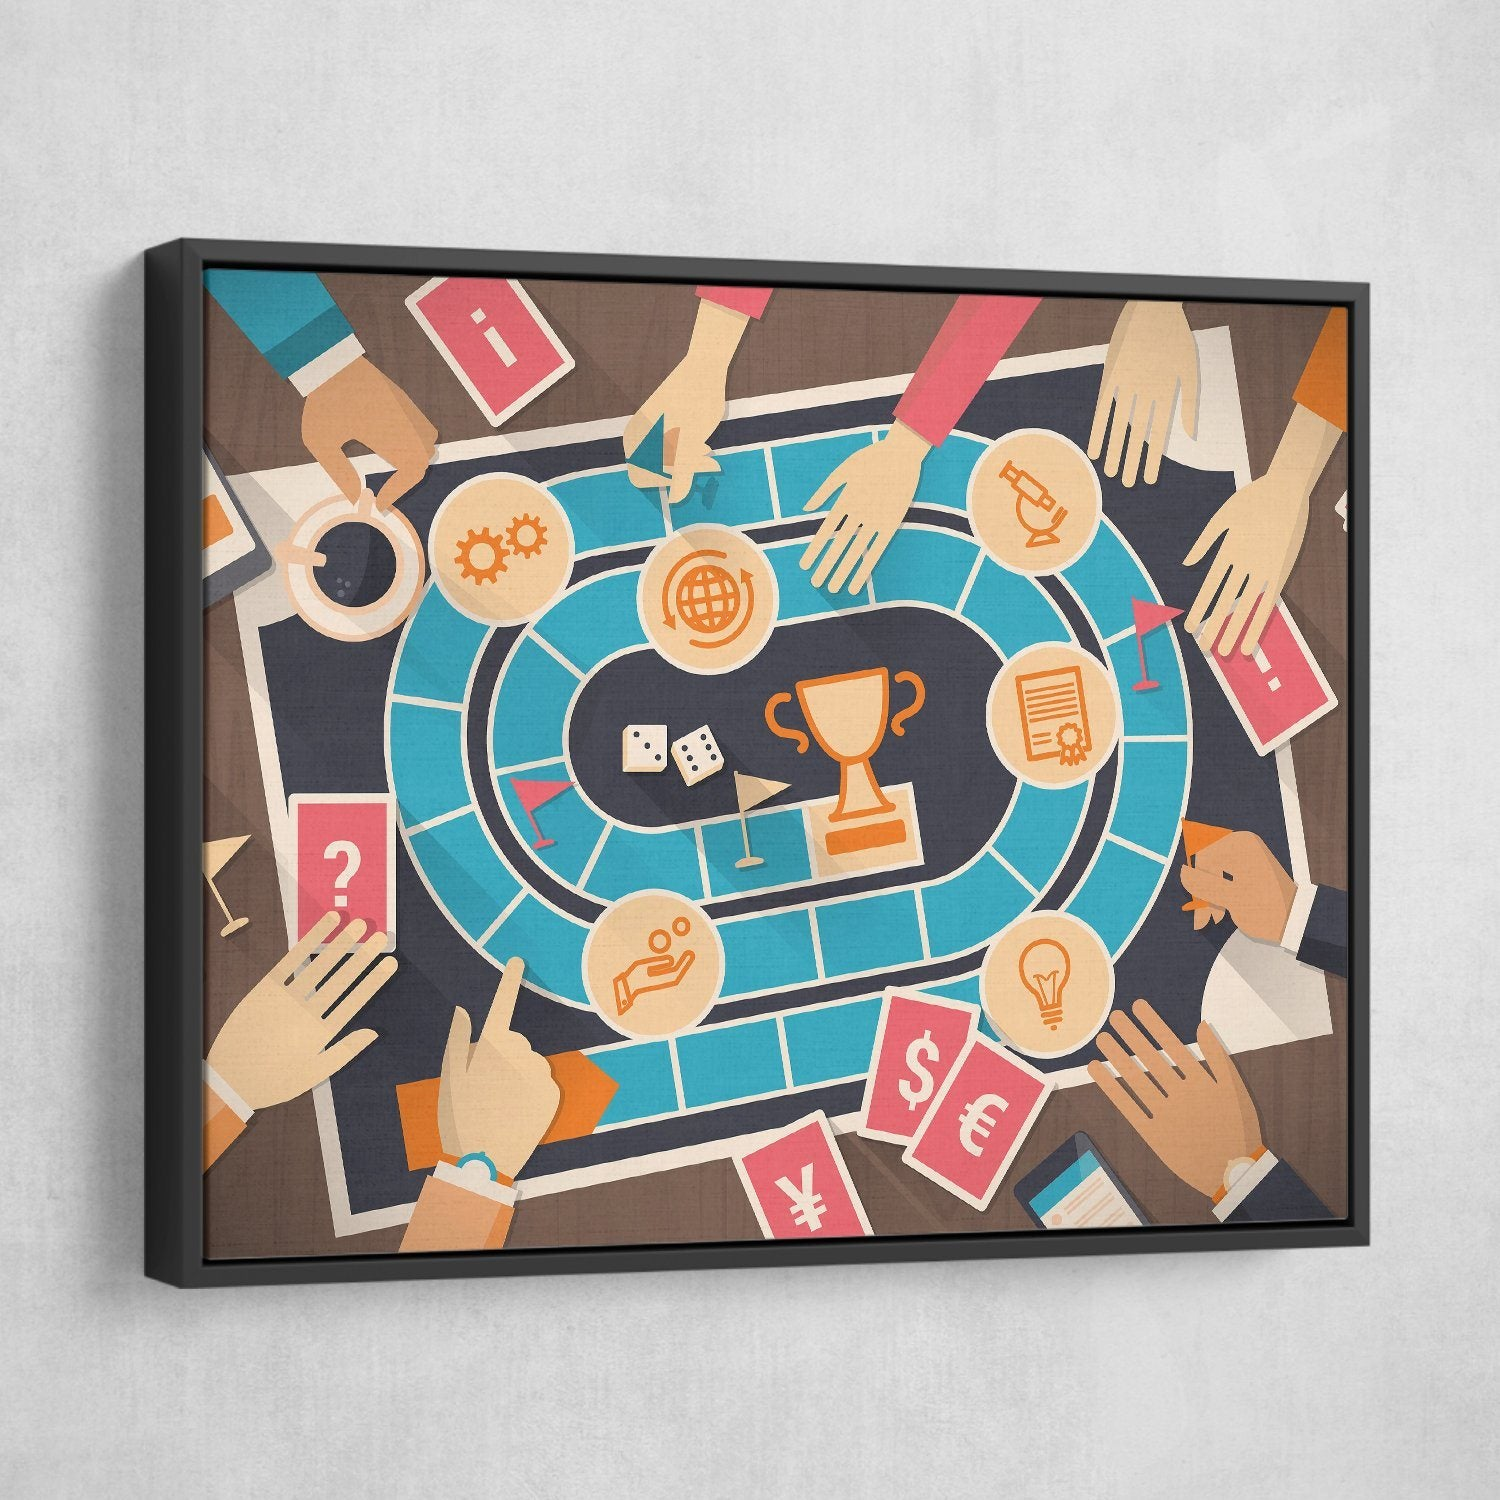 Board Game wall art black frame